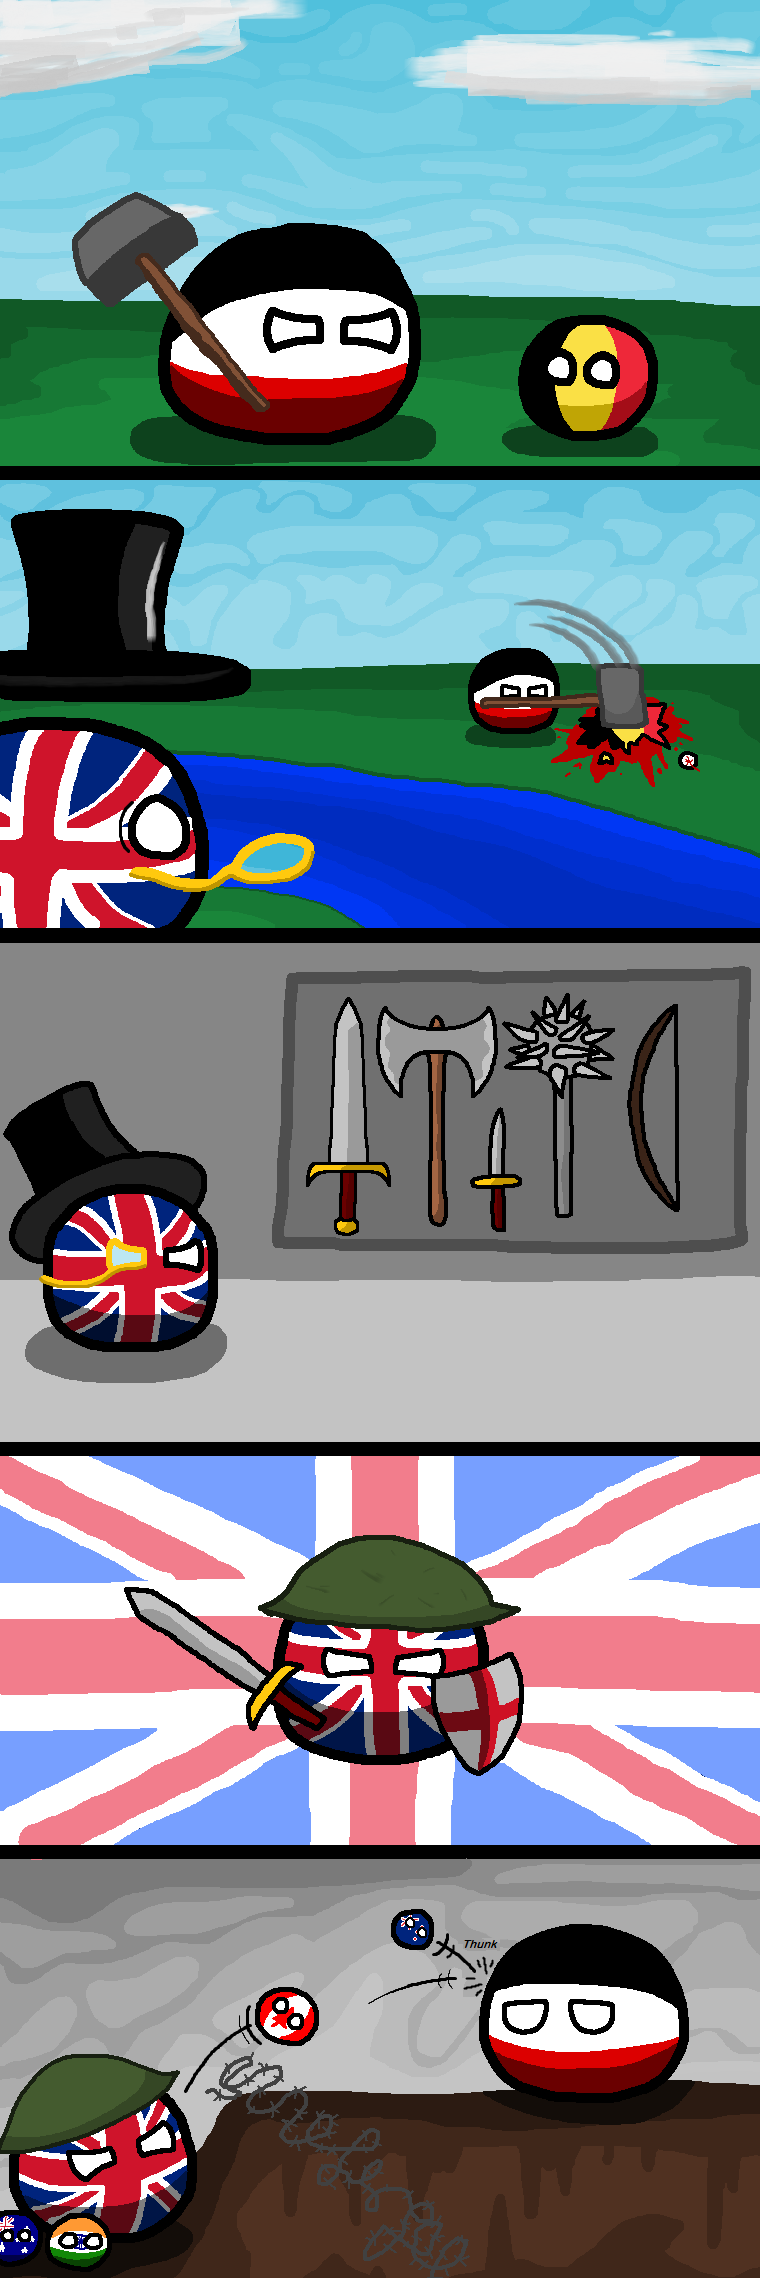 Daily Polandball: British Warfare